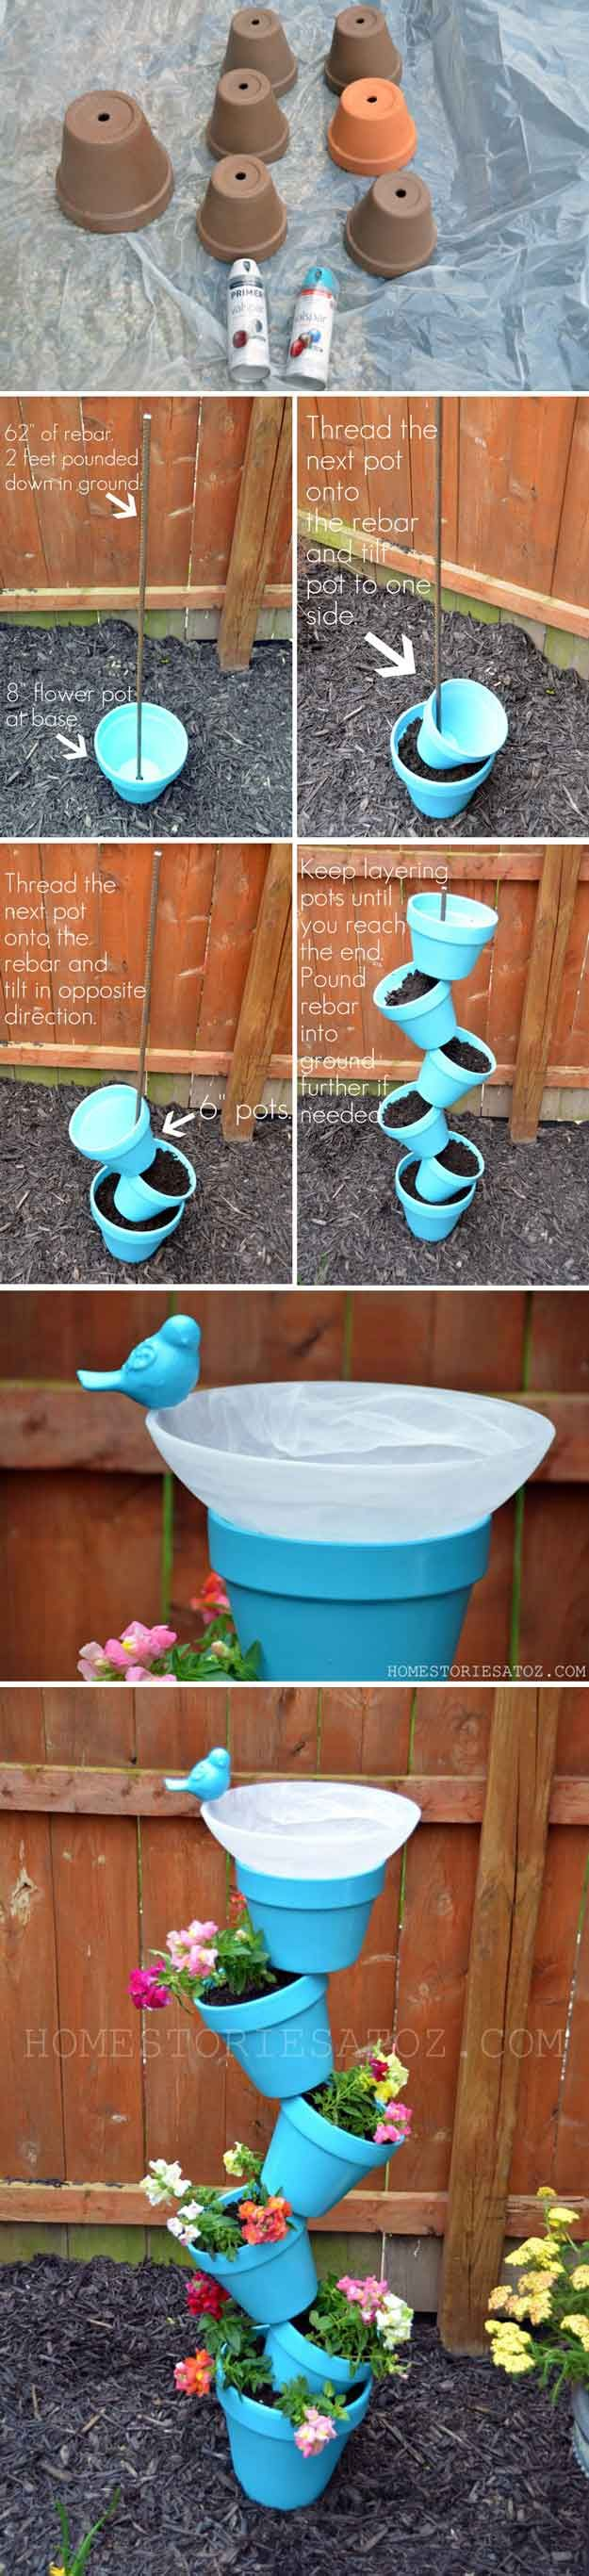 Blumentopf Deko für den Garten - tolle Idee - einfach zu machen *** DIY Planter and Bird Bath - 17 Easy DIY Backyard Project Ideas